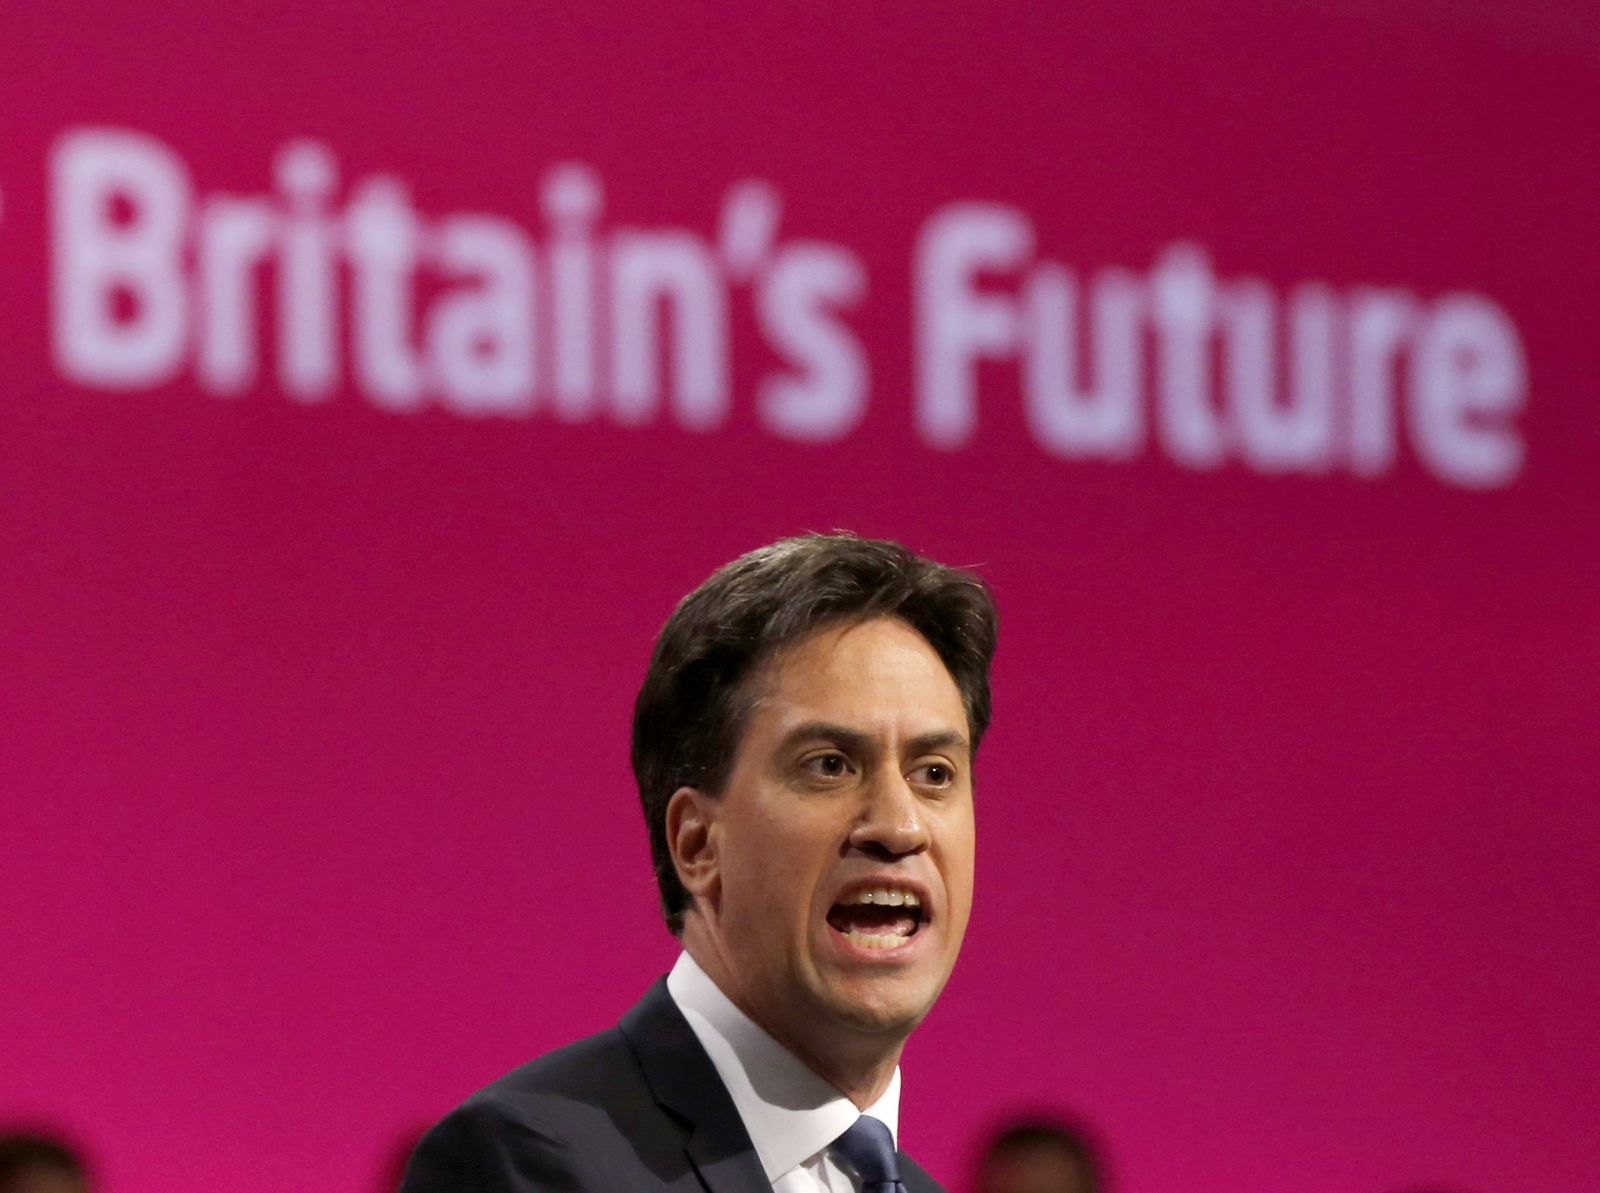 Ed Miliband conference speech